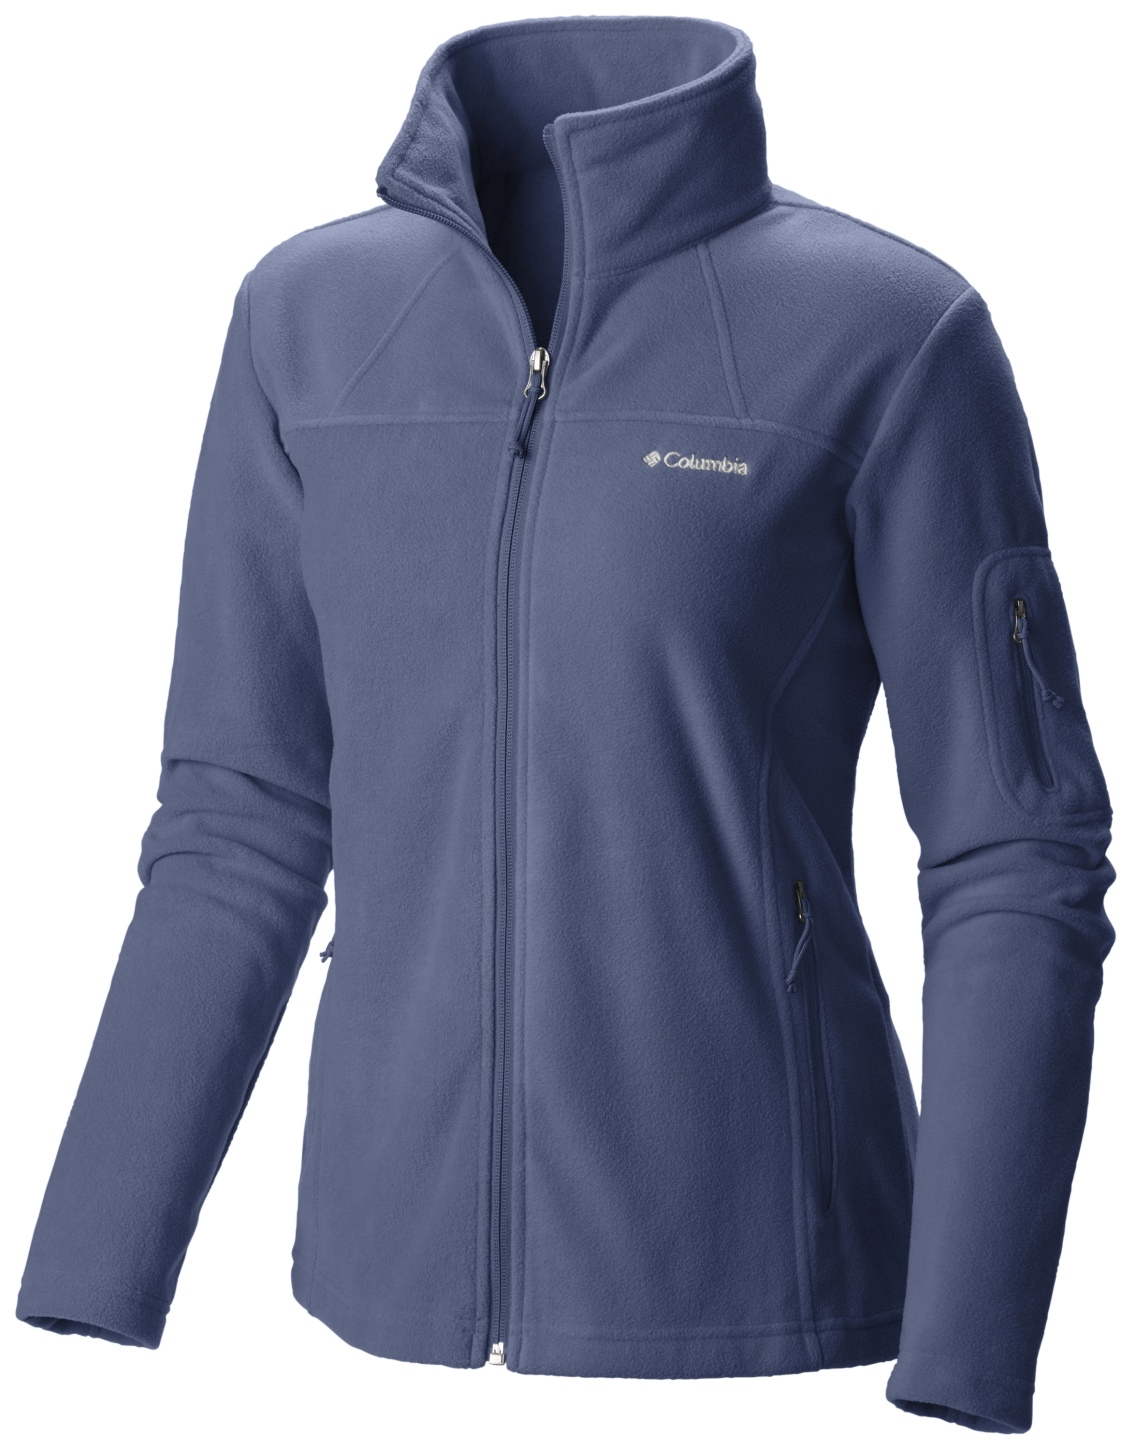 Columbia Women's Fast Trek II Jacket Bluebell-30